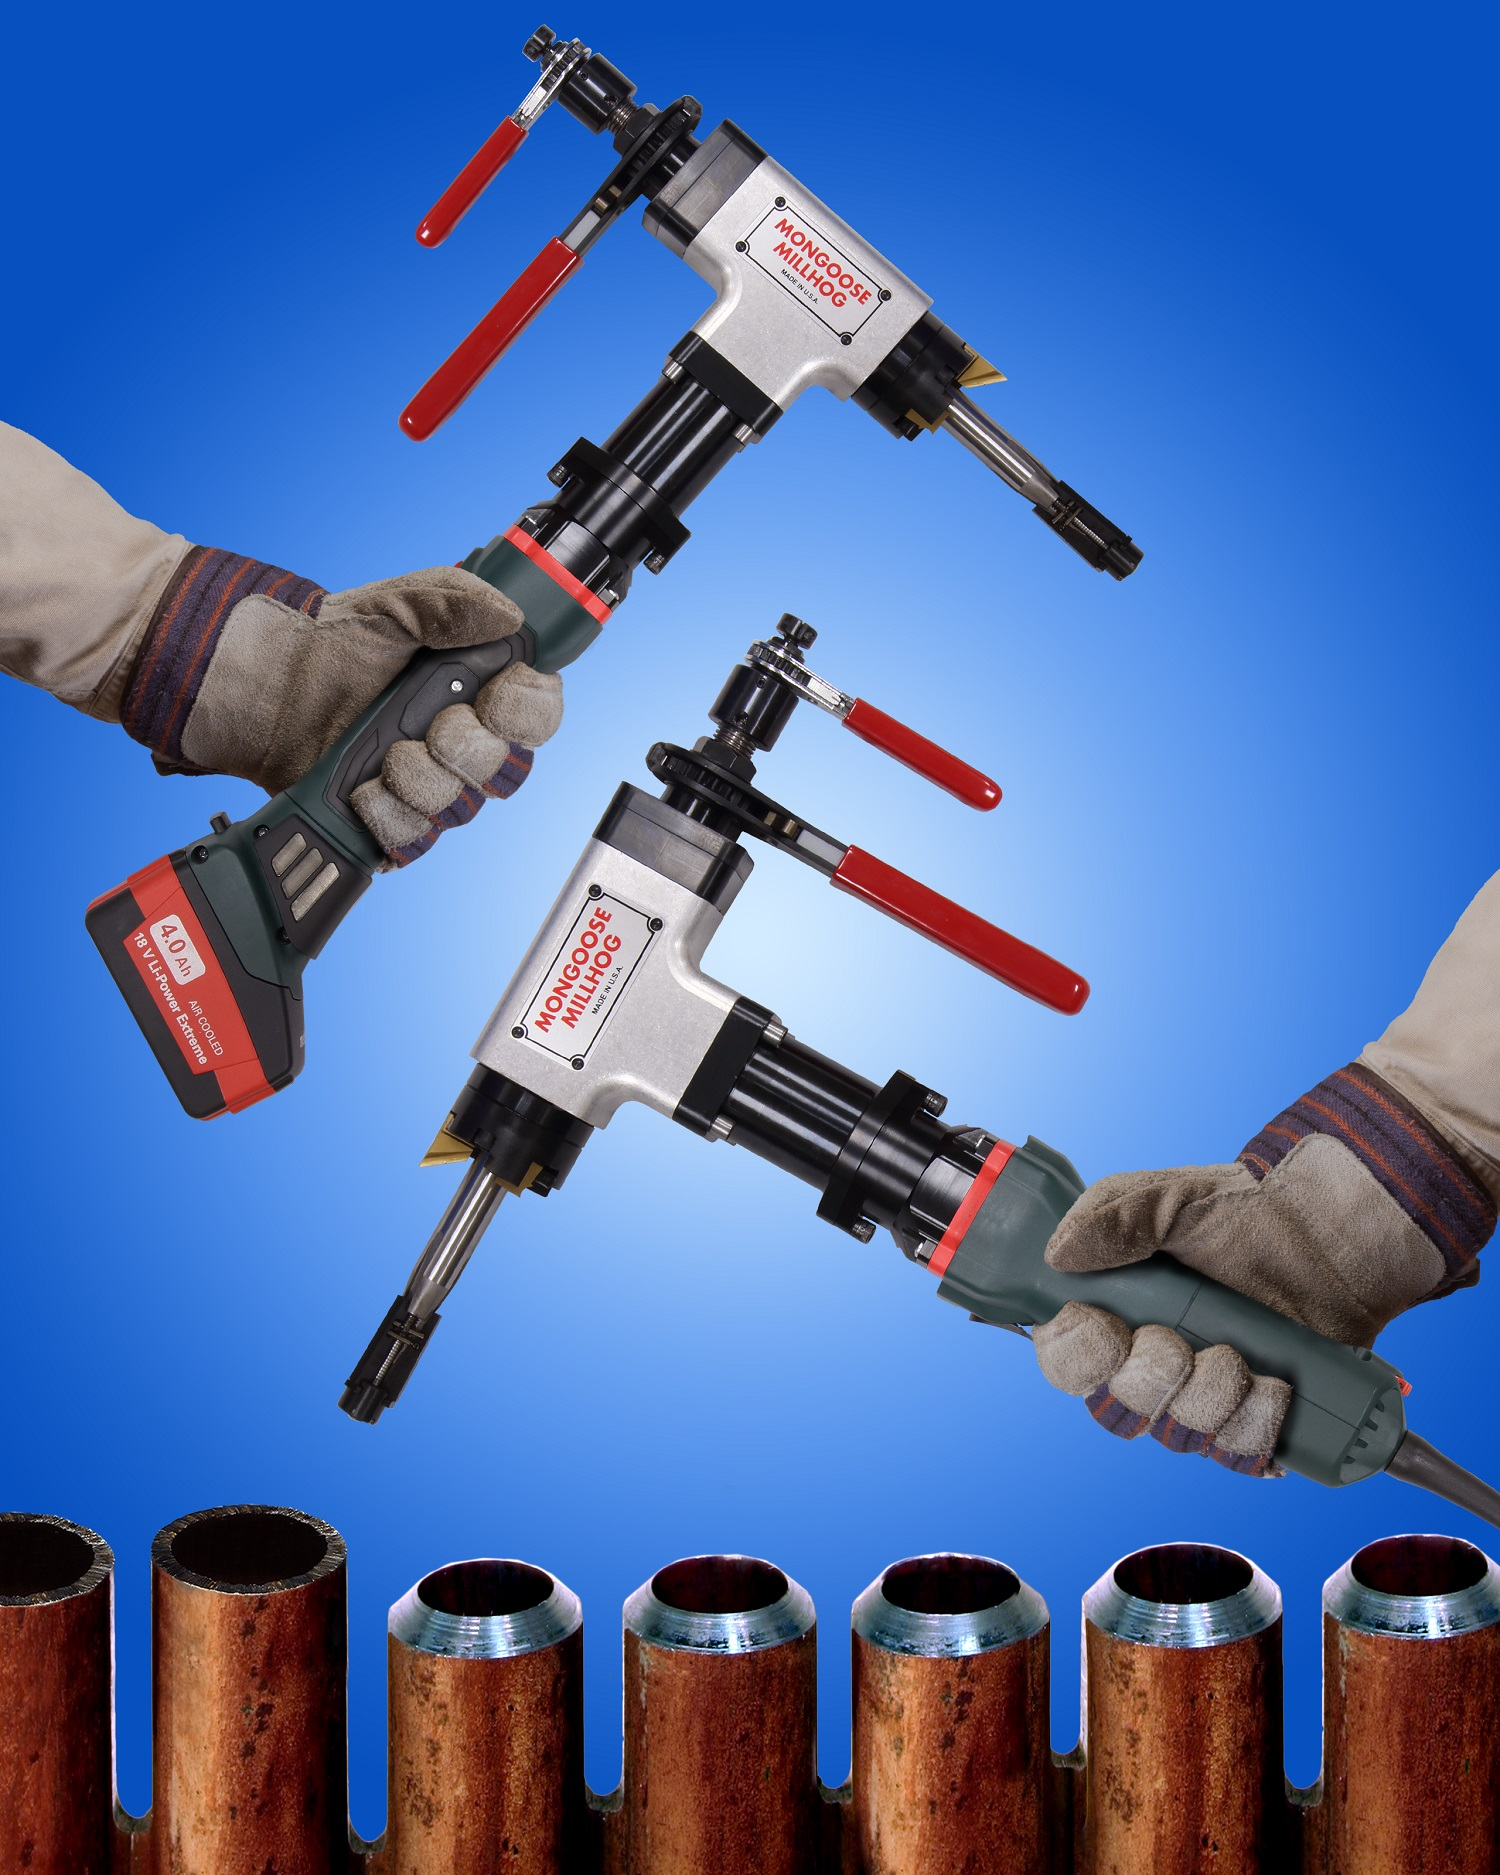 TUBE AND PIPE BEVELING TOOLS OFFERED IN BATTERY AND ELECTRIC MODELS